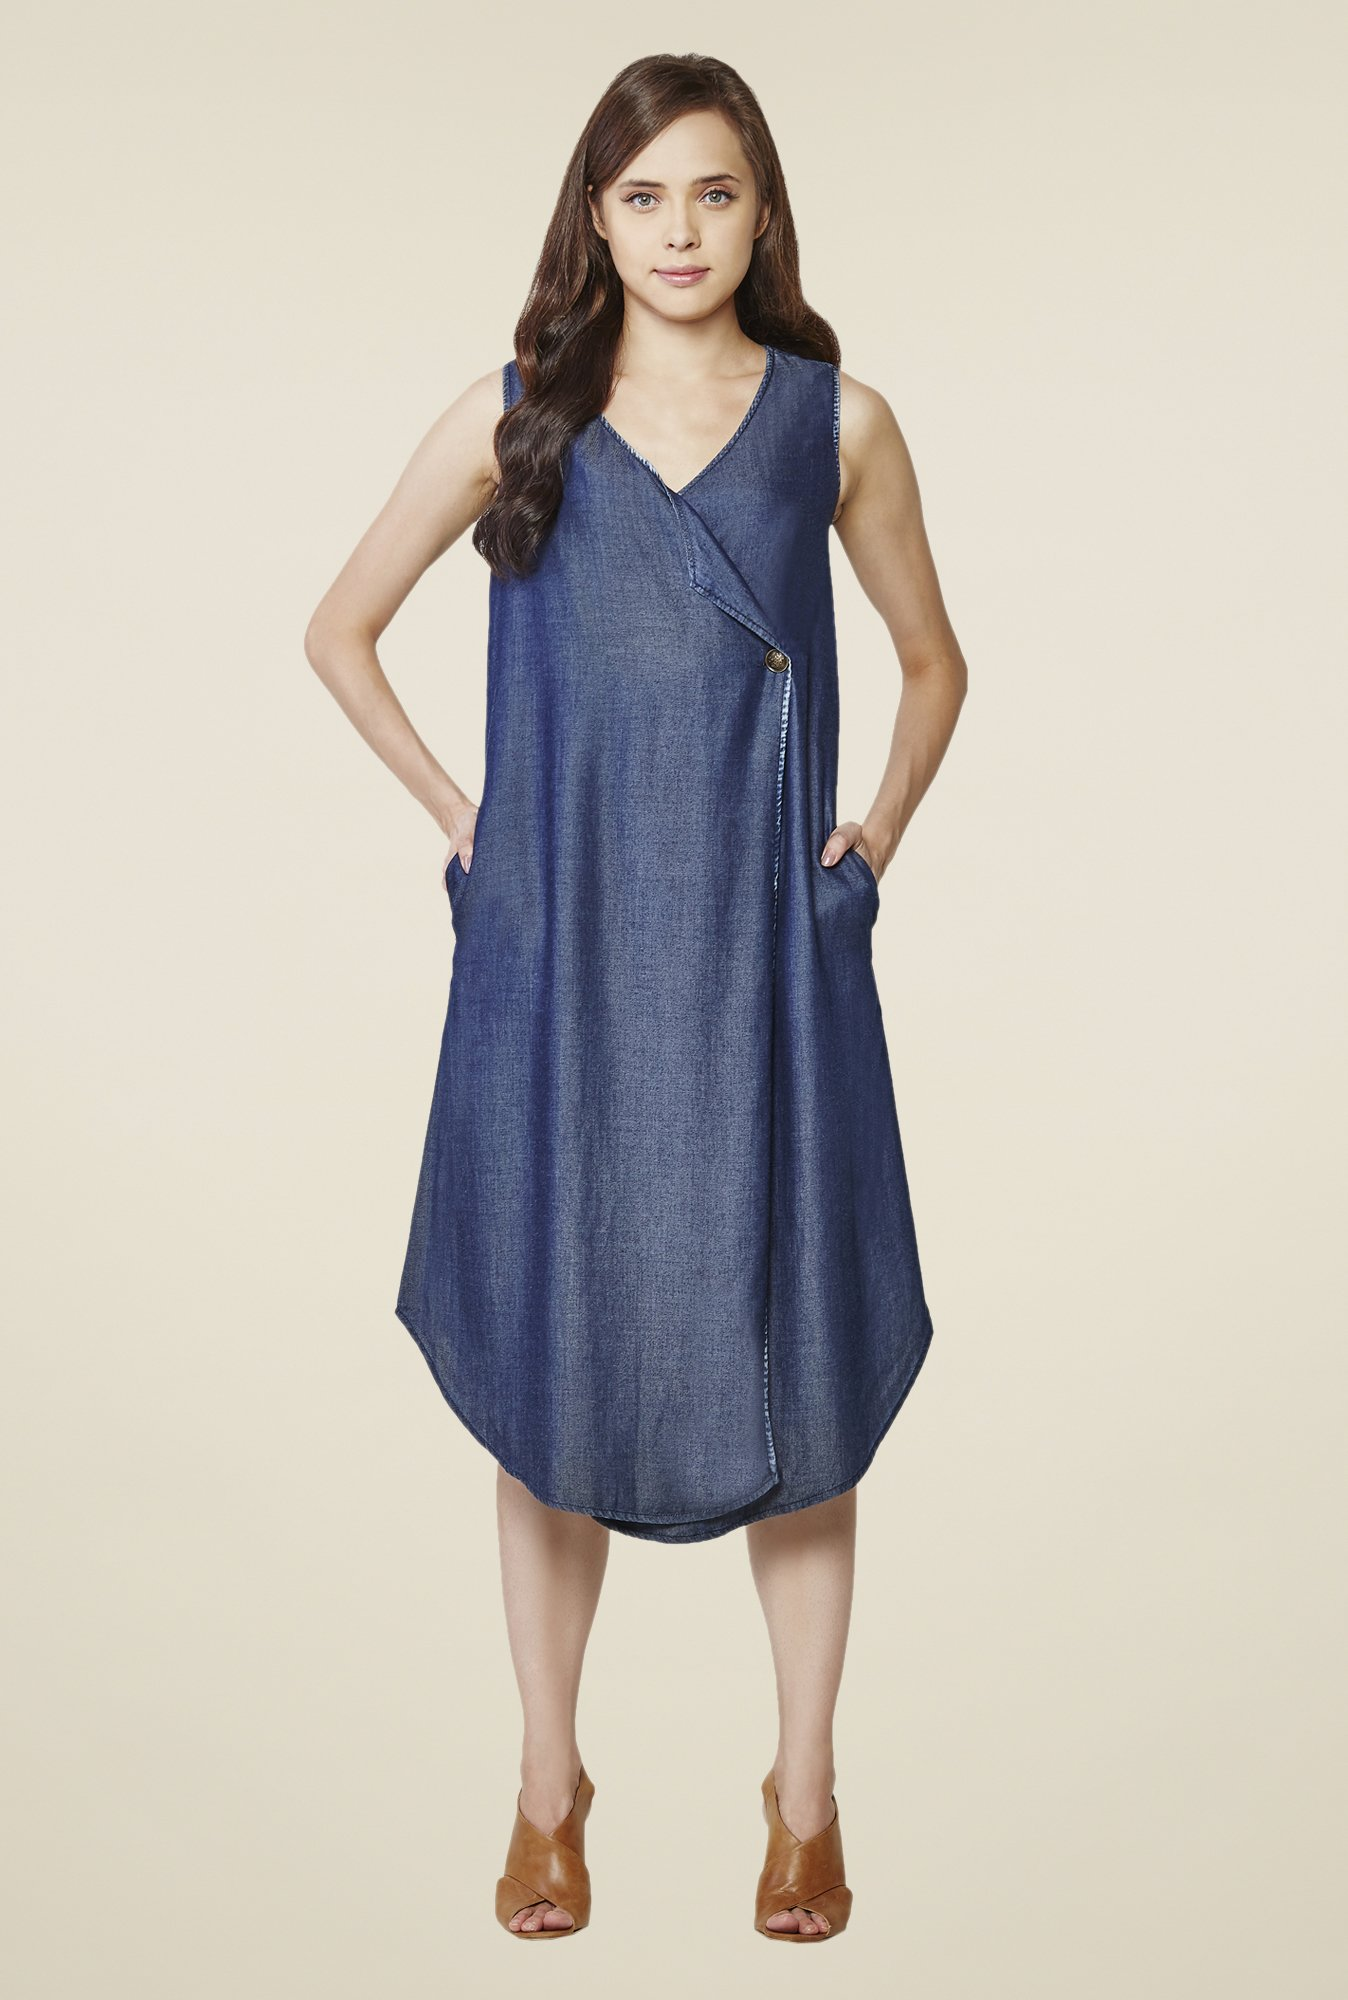 AND Blue Solid Sleeveless Dress